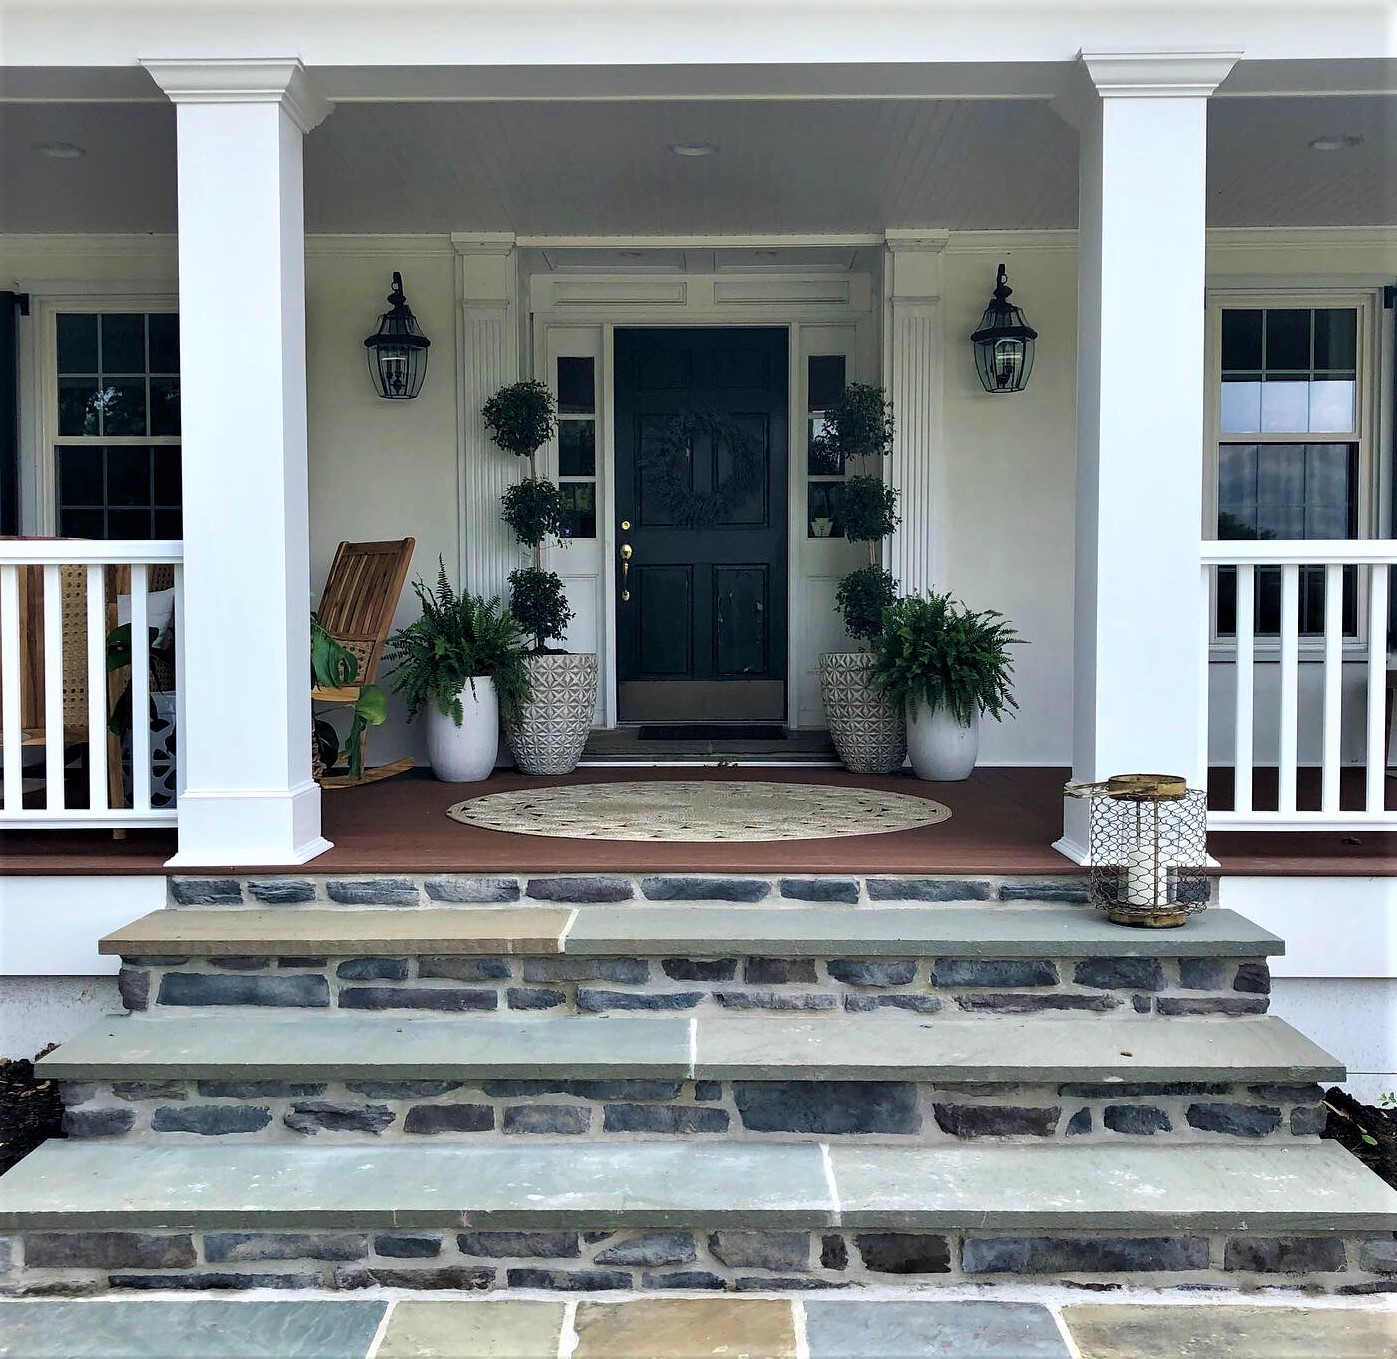 Stone steps leading up to the front door of a white house with porch columns